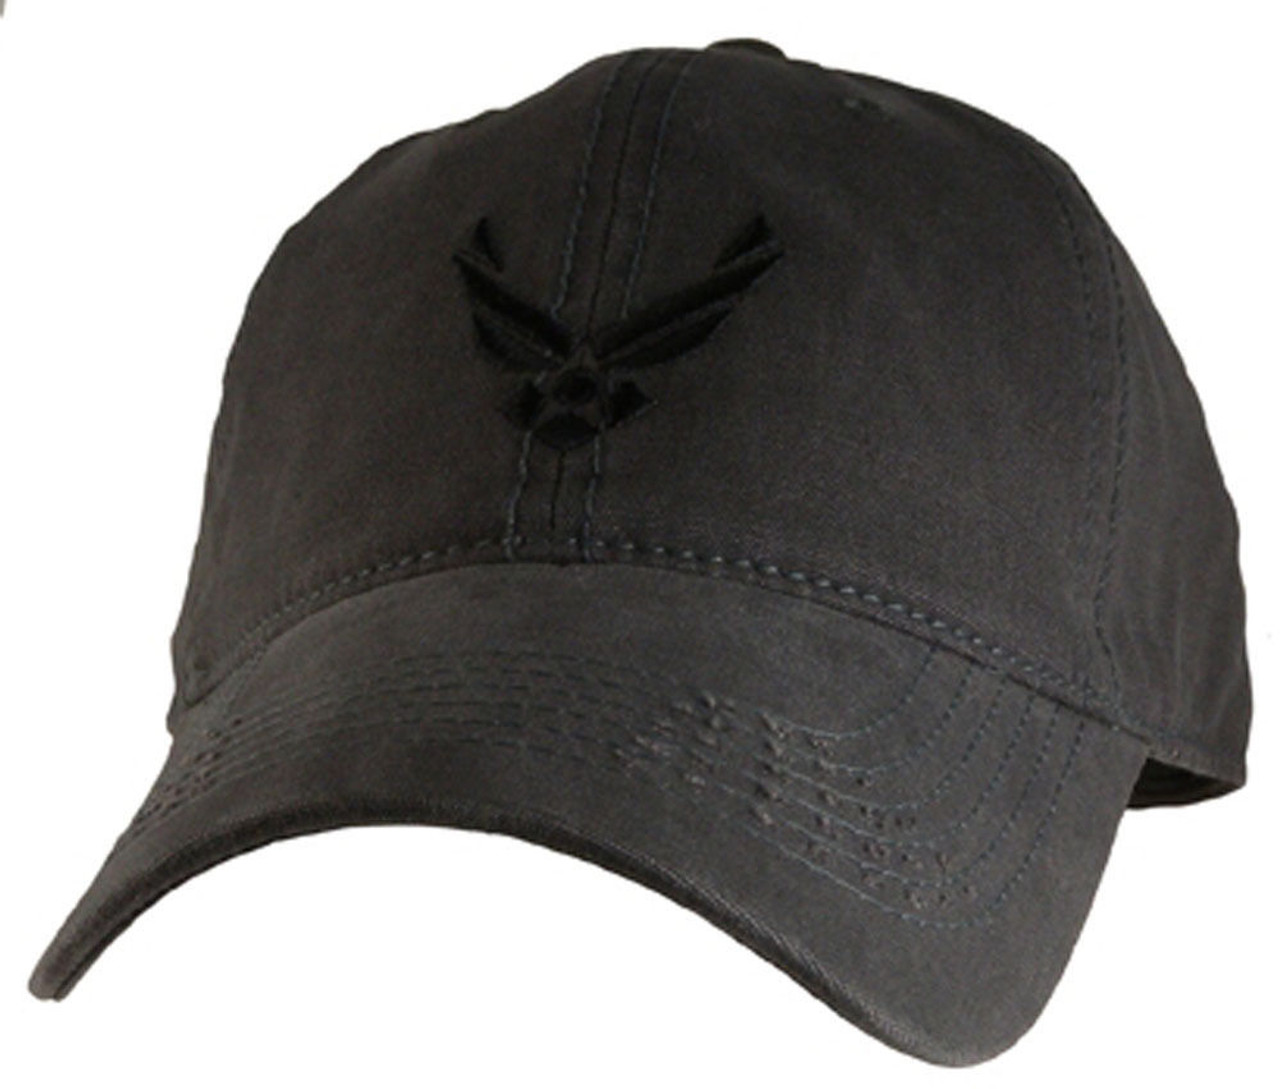 e84b1f76e4b U.S.A.F. US AIR FORCE Relaxed Fit CHARCOAL OFFICIALLY LICENSED Military Hat  baseball cap